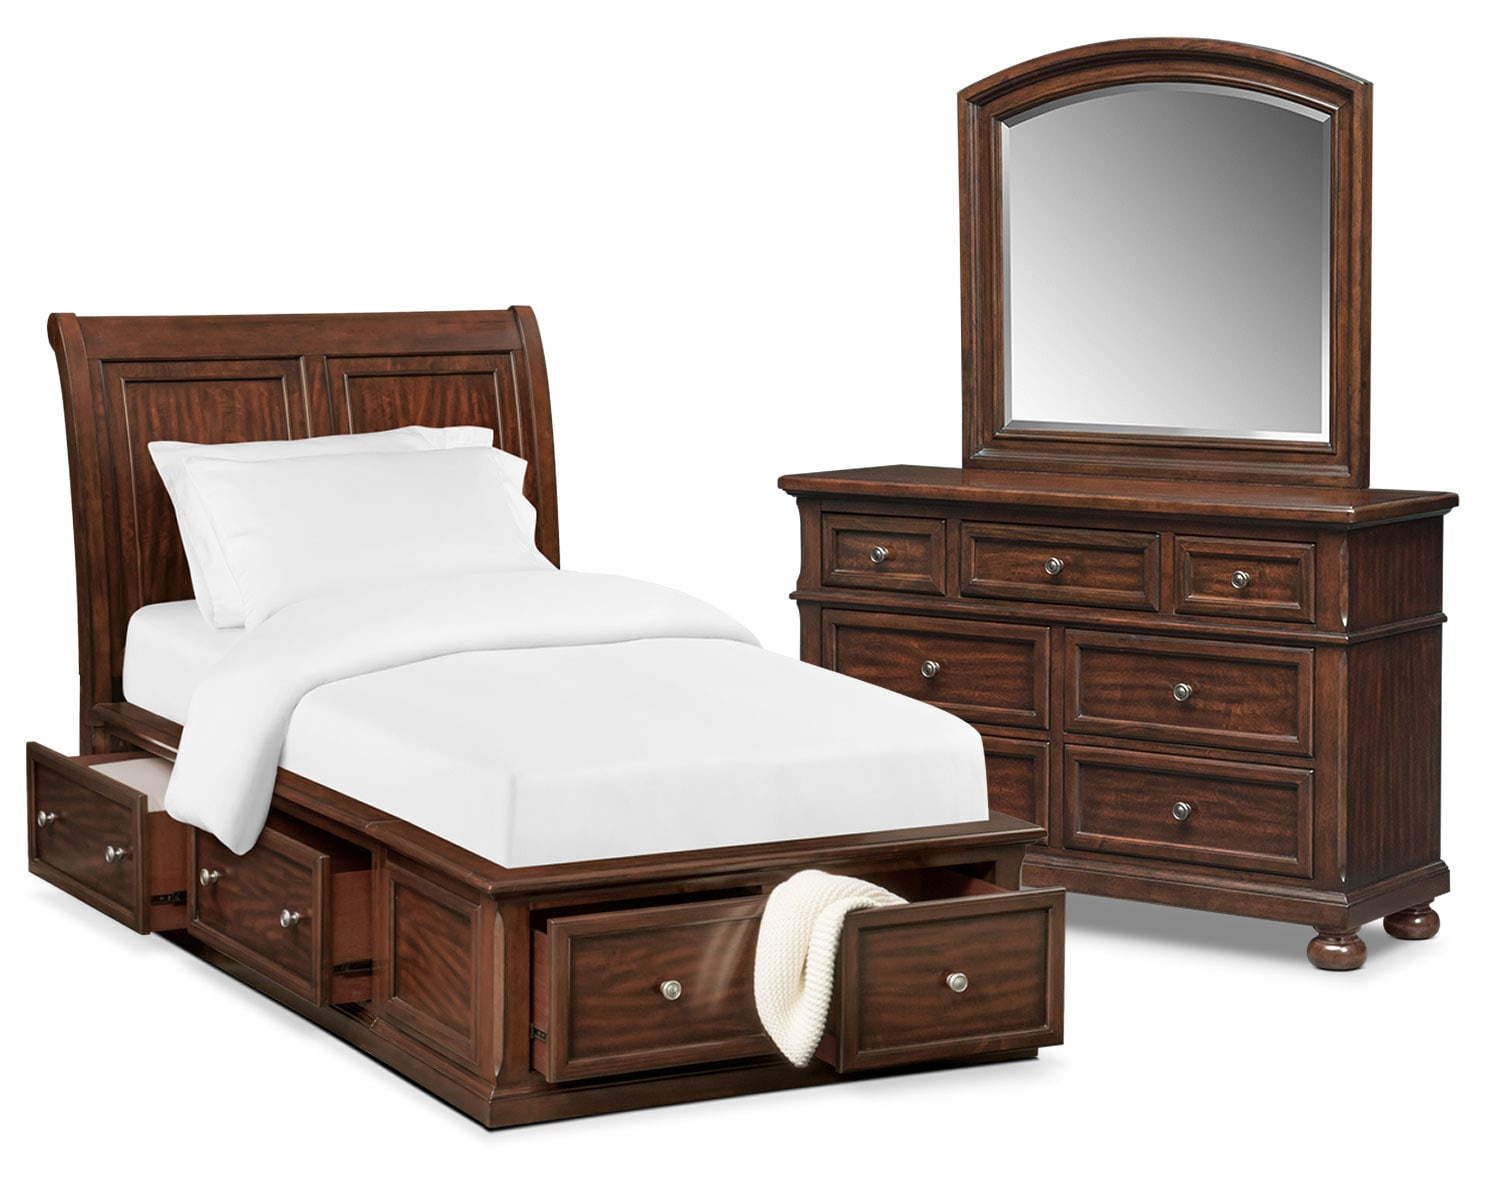 Bedroom Furniture - Hanover Youth 5-Piece Full Sleigh Bedroom Set with Storage - Cherry